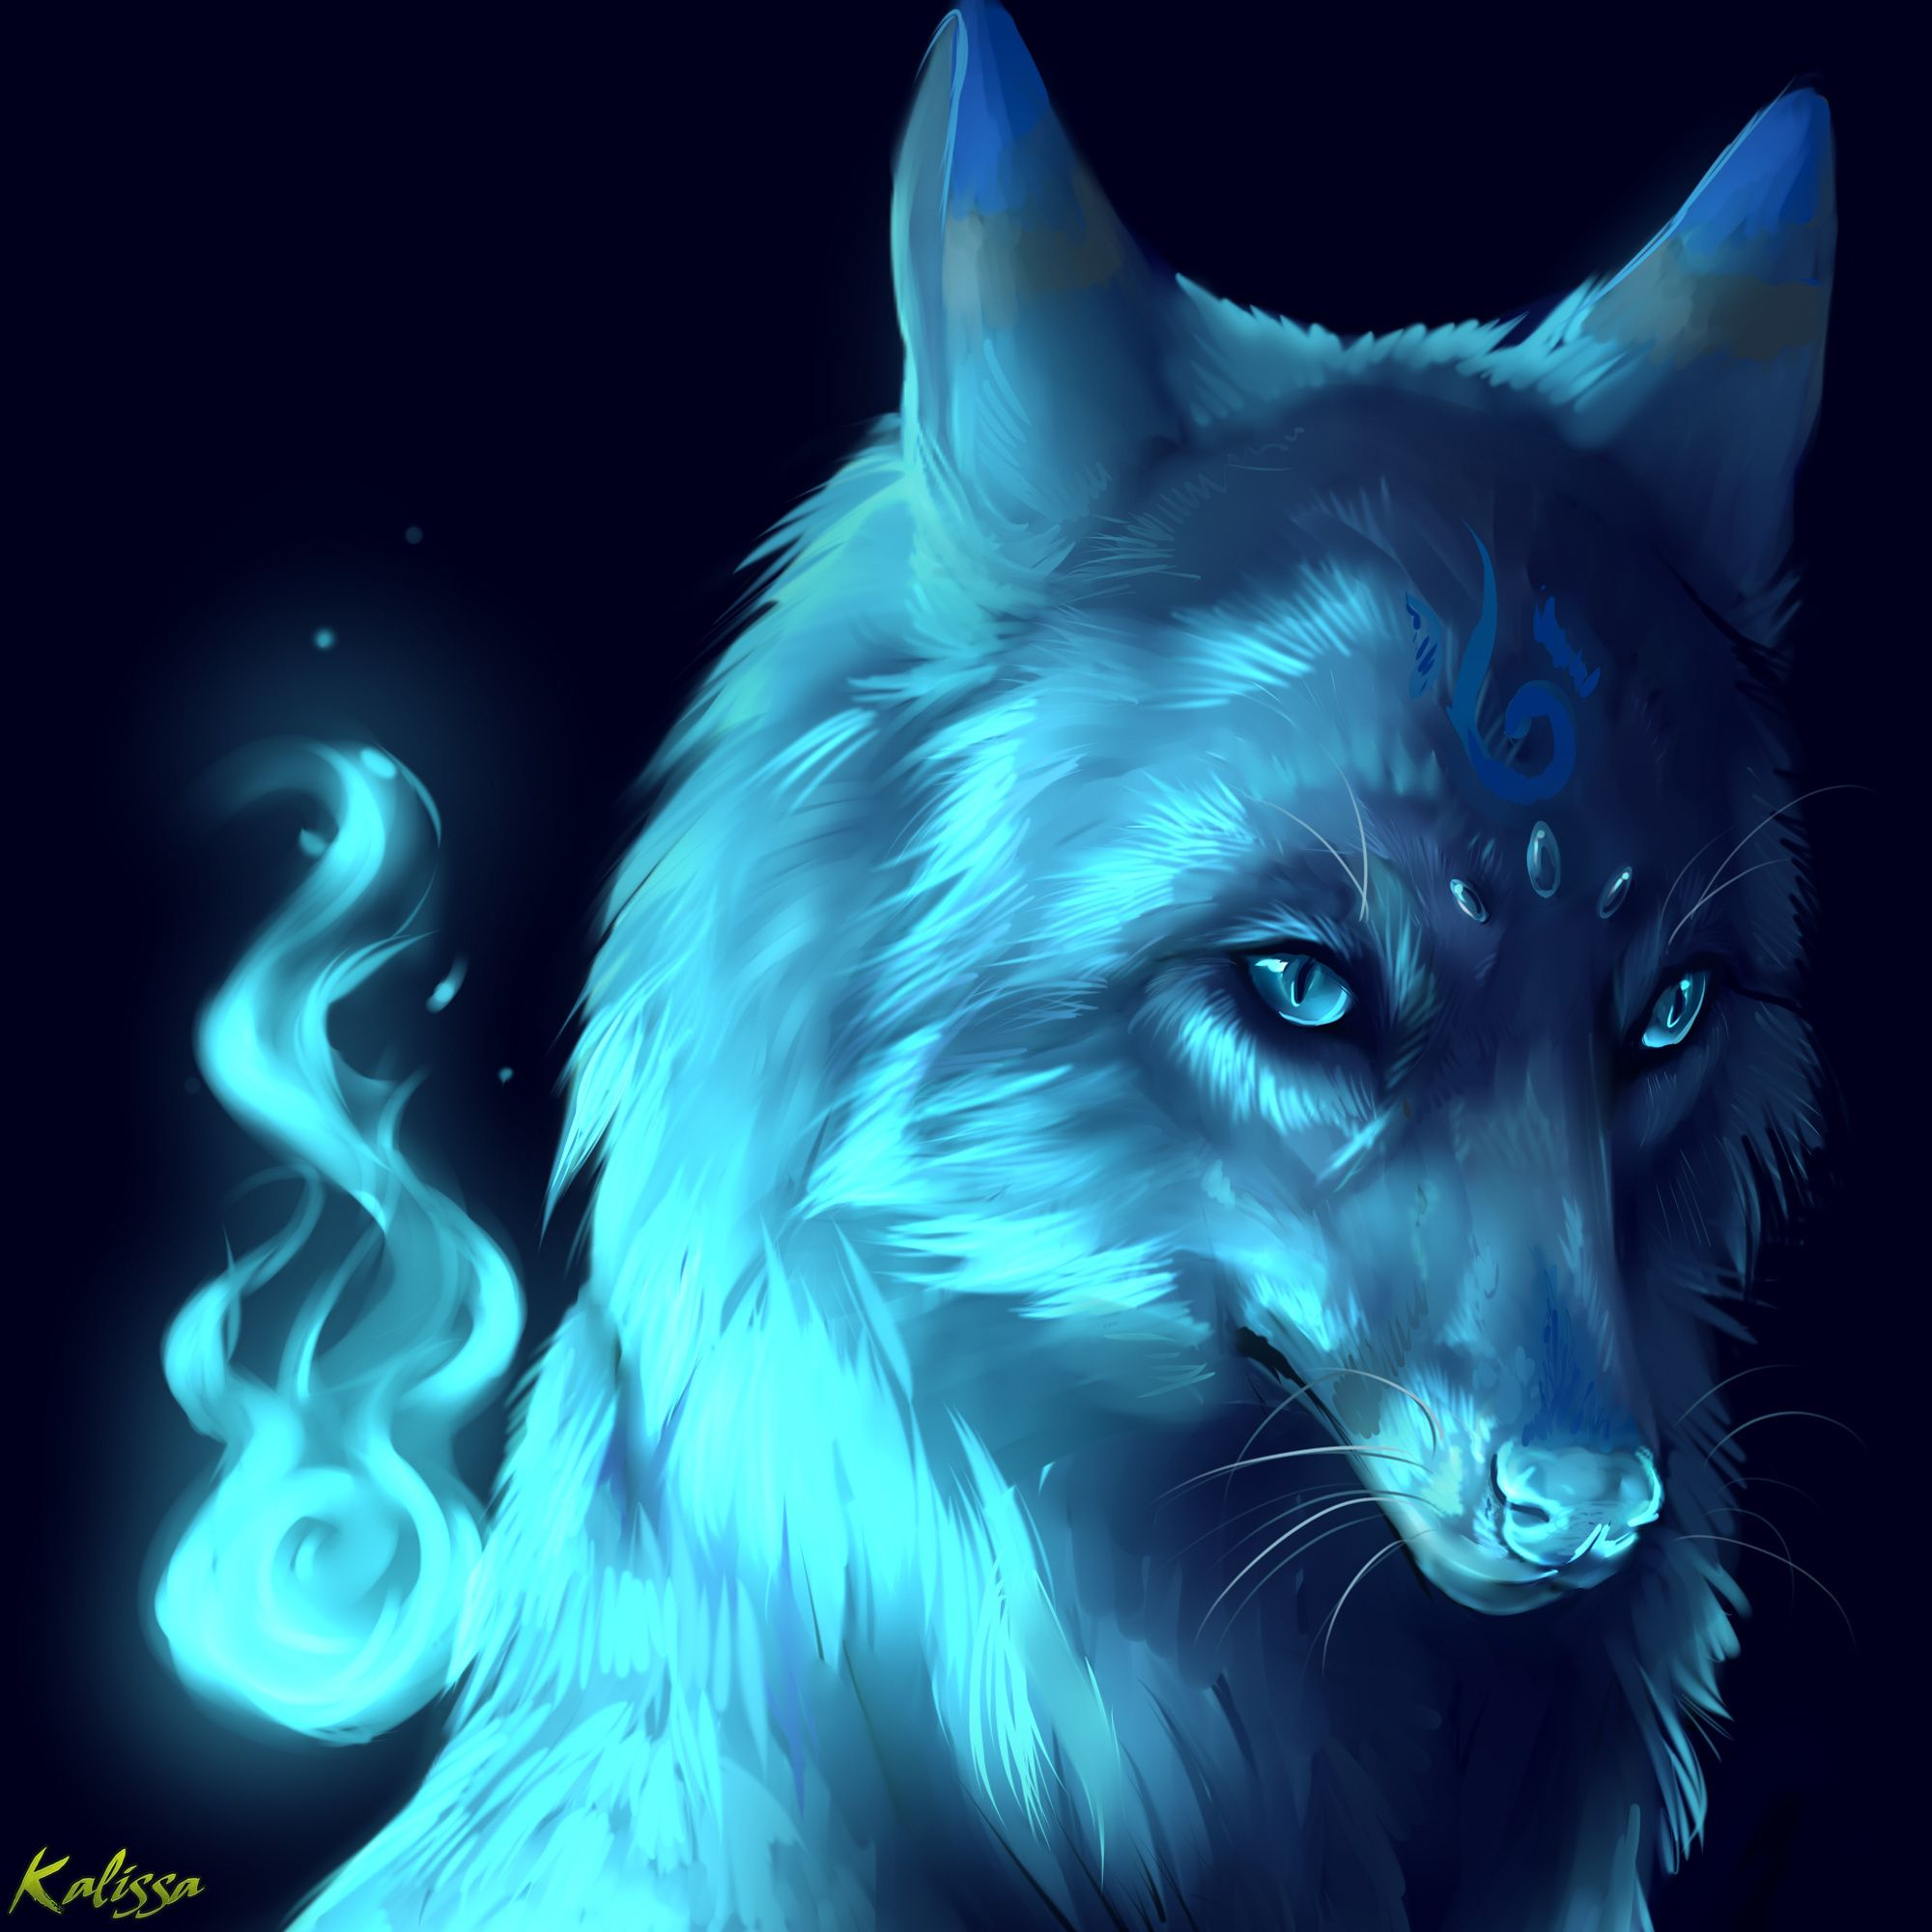 2000x2000 wolf, night, eyes, fantasy - wallpaper #90131 (2000x2000px) on ...